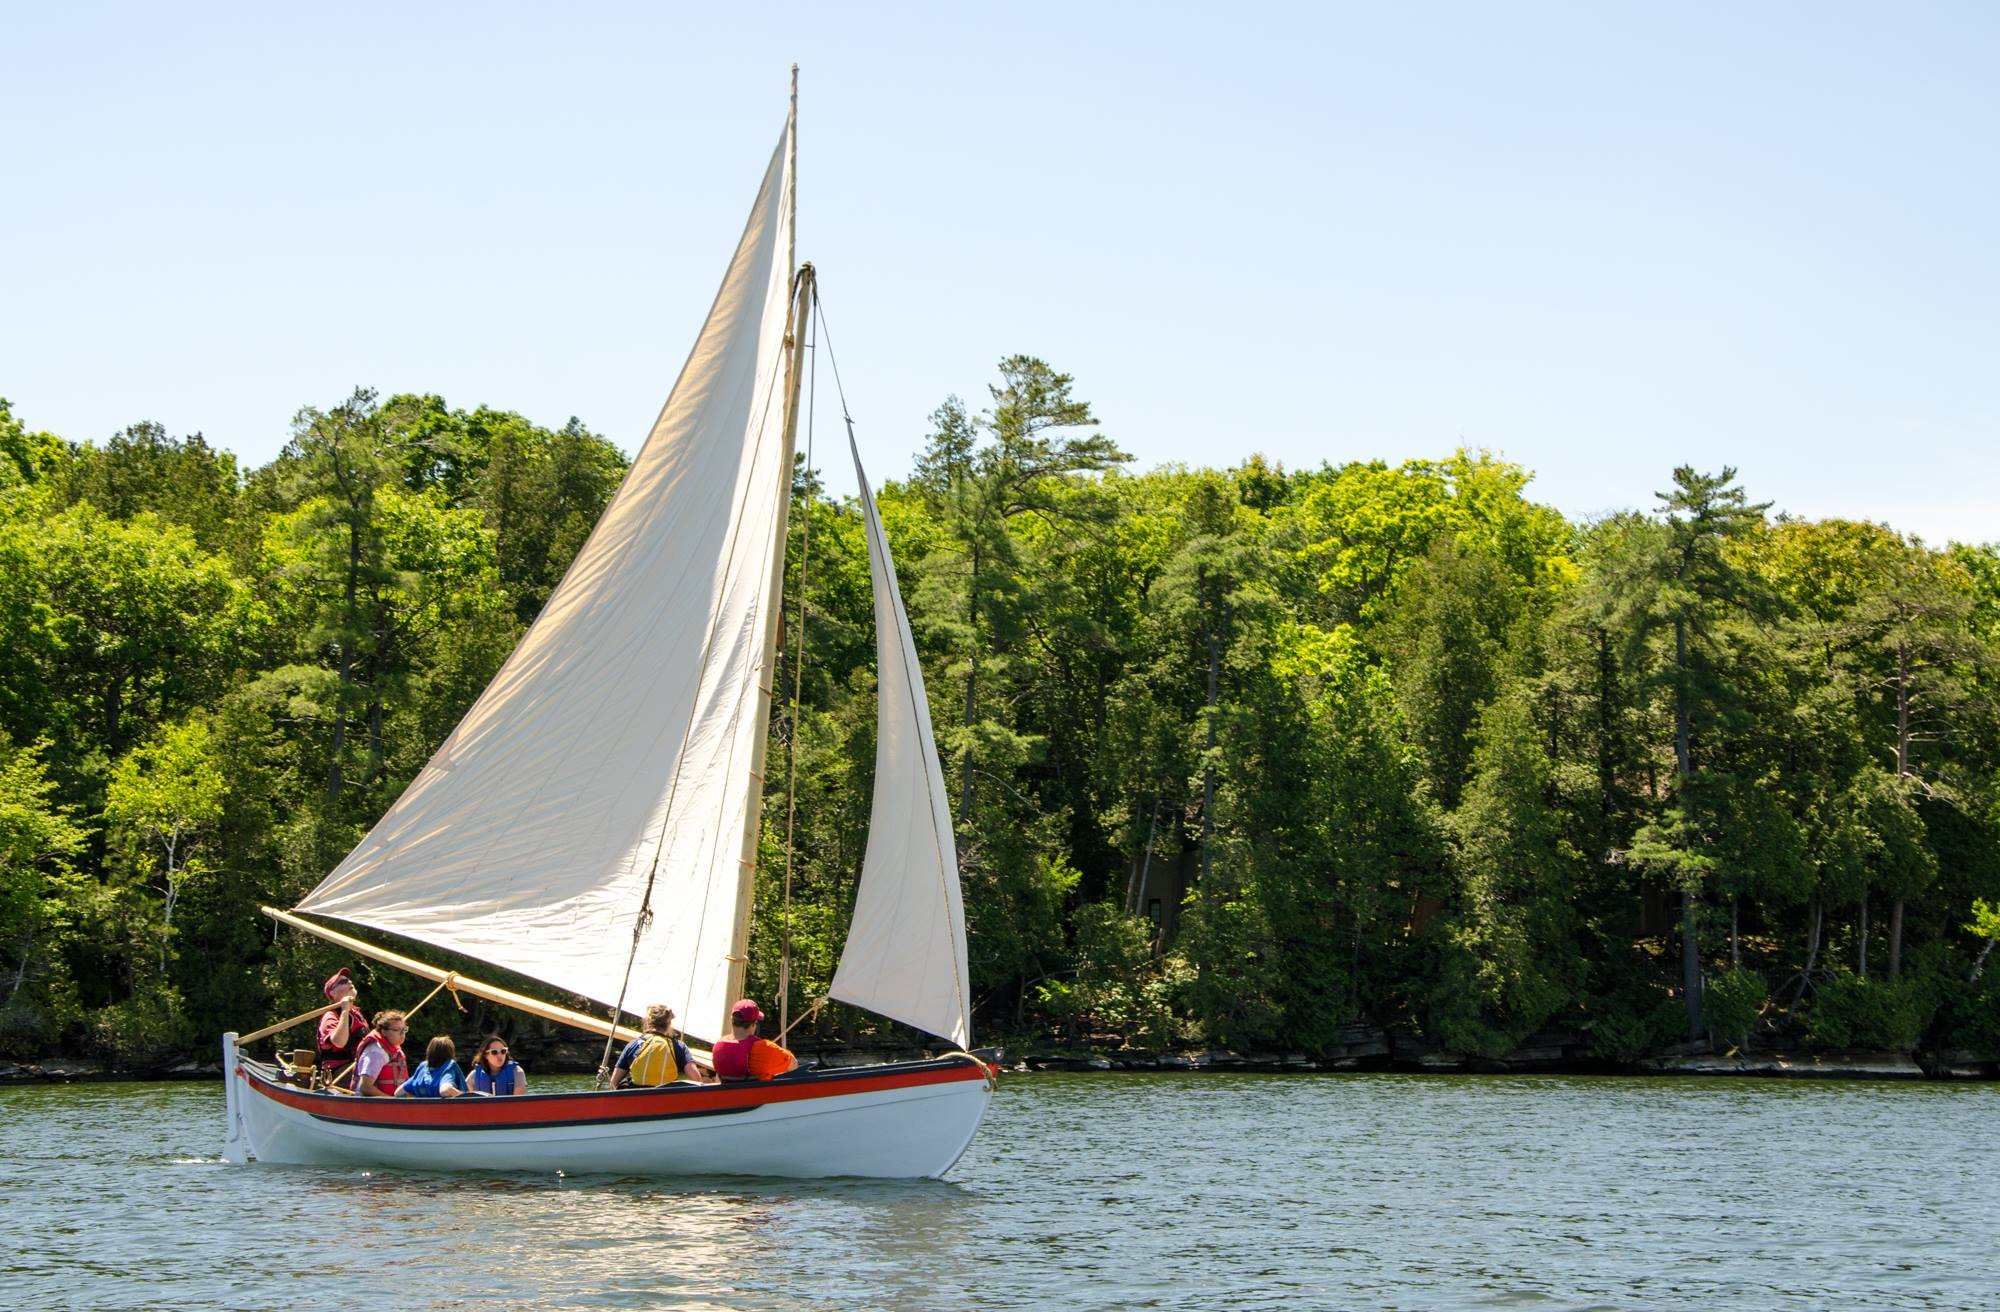 Campers sail on Lake Champlain